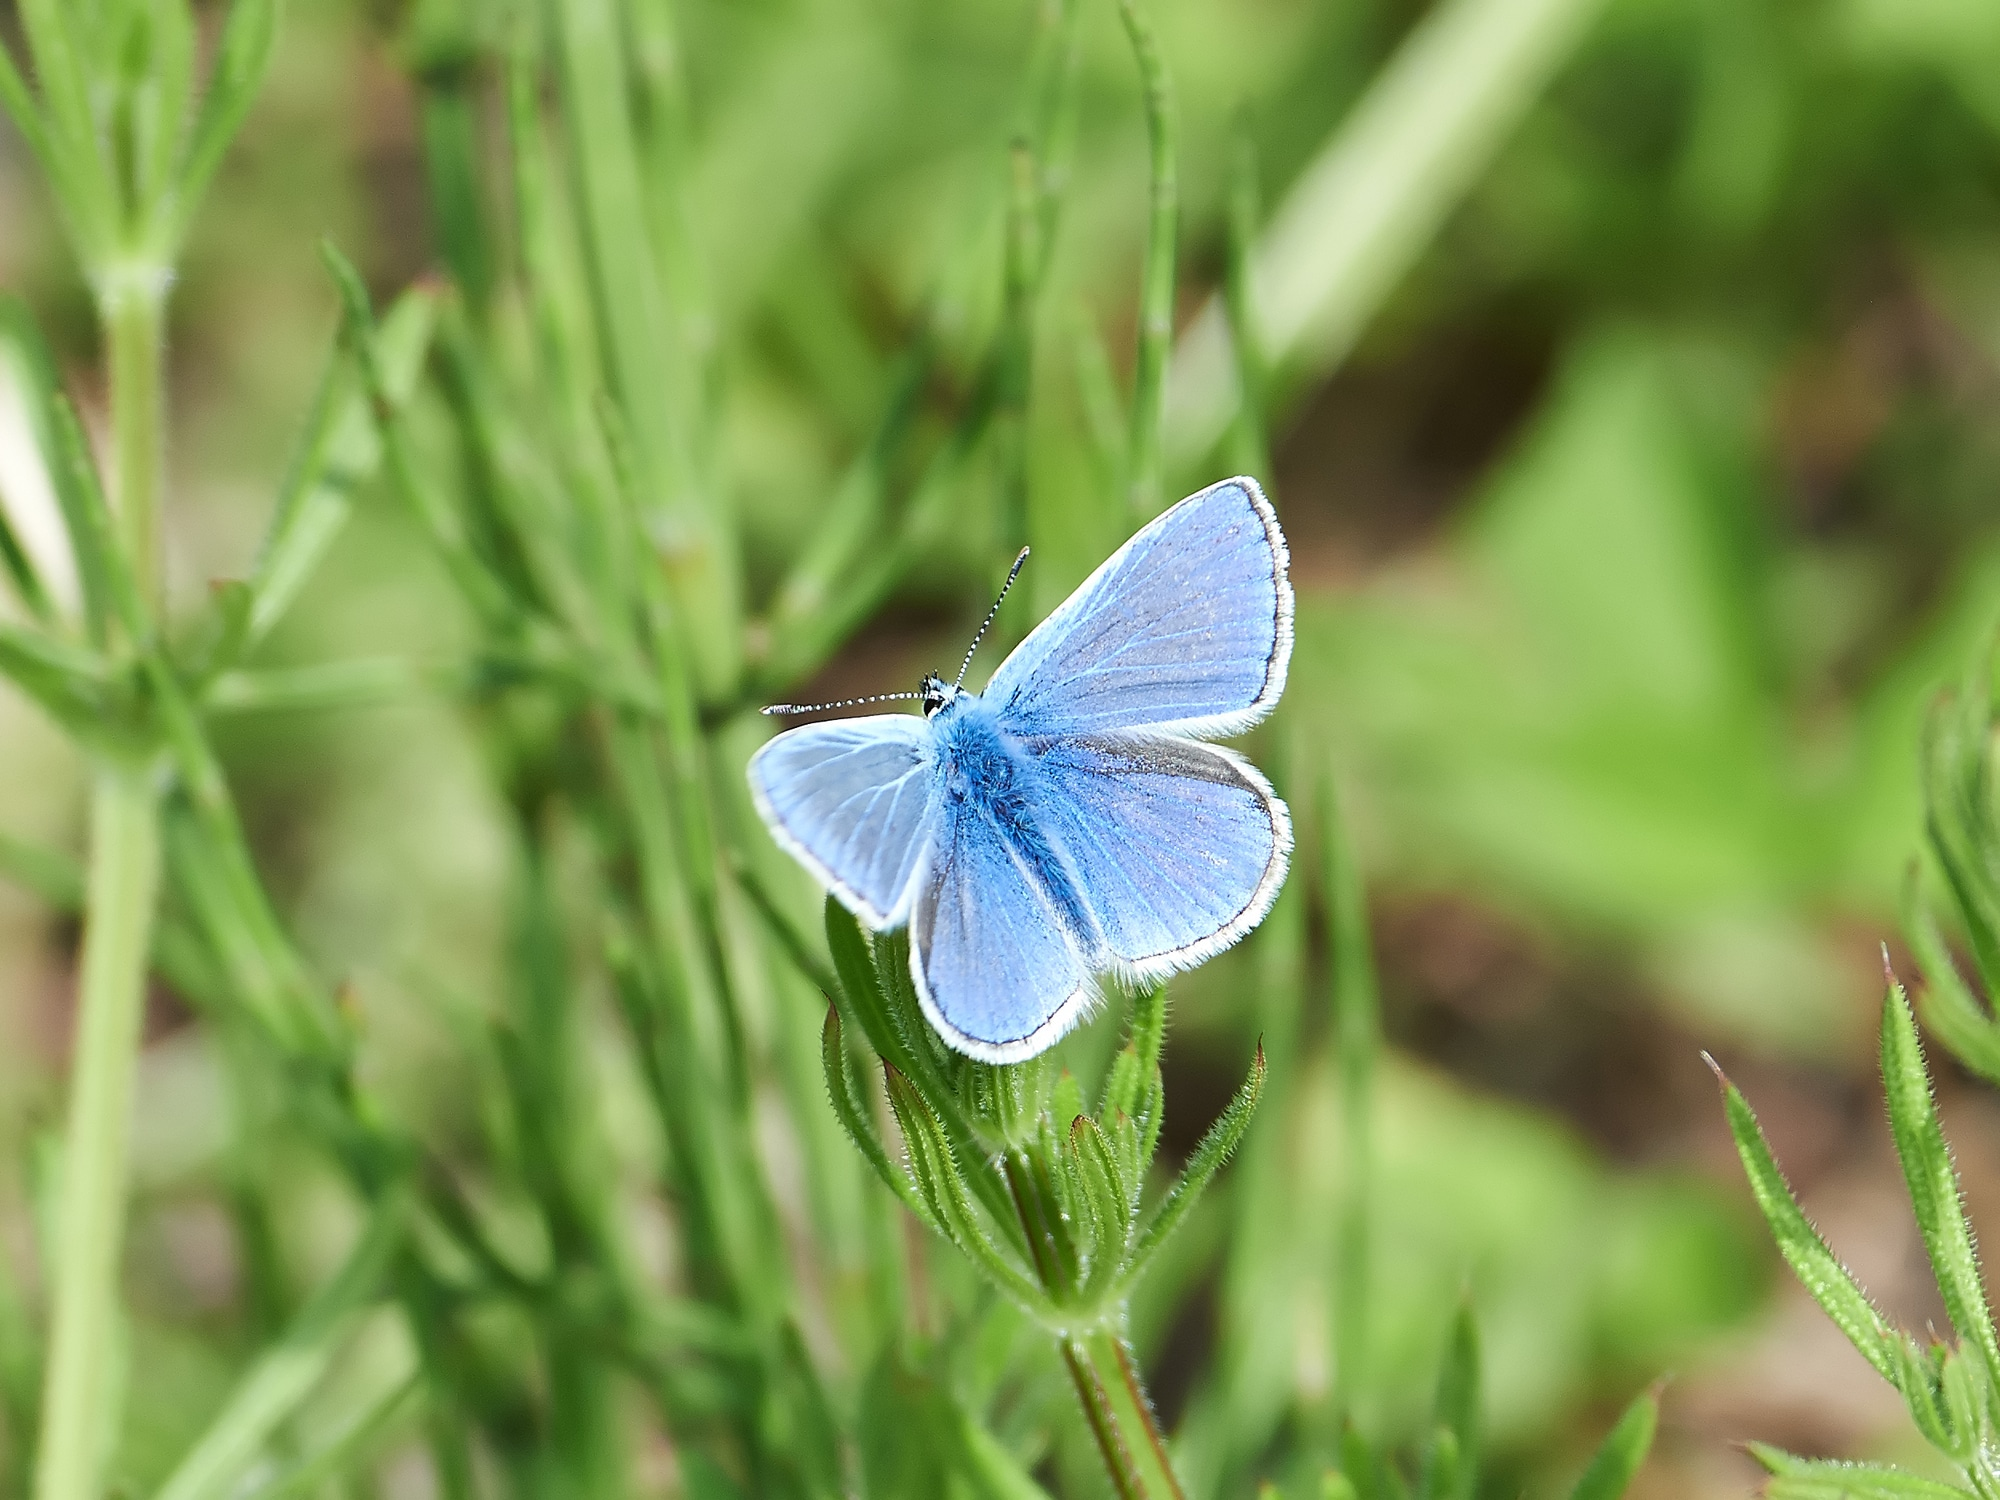 Common blue resting on a green plant